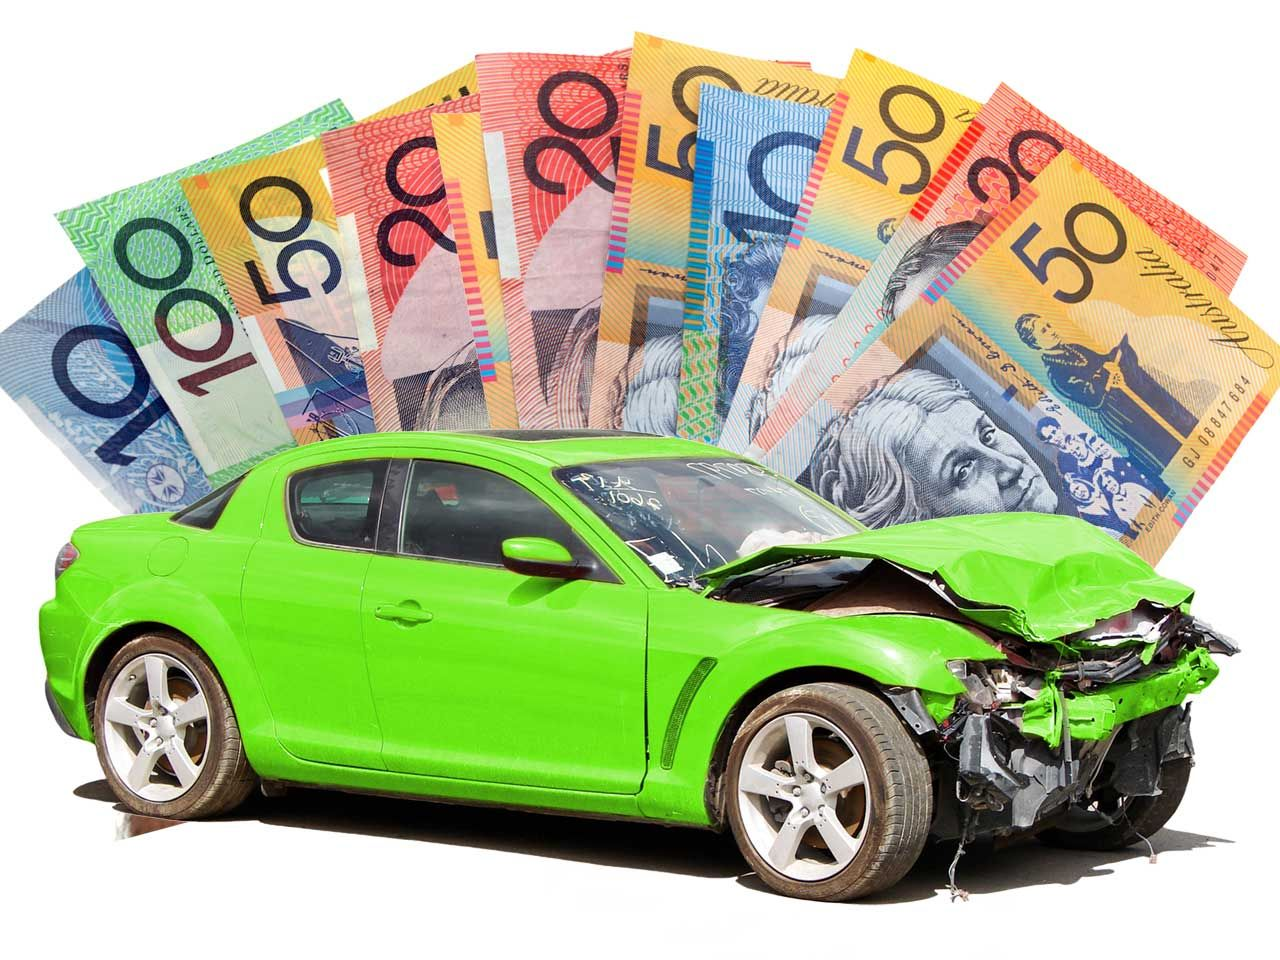 Cash For Cars Perth Instant Top Dollars Upto 10,000